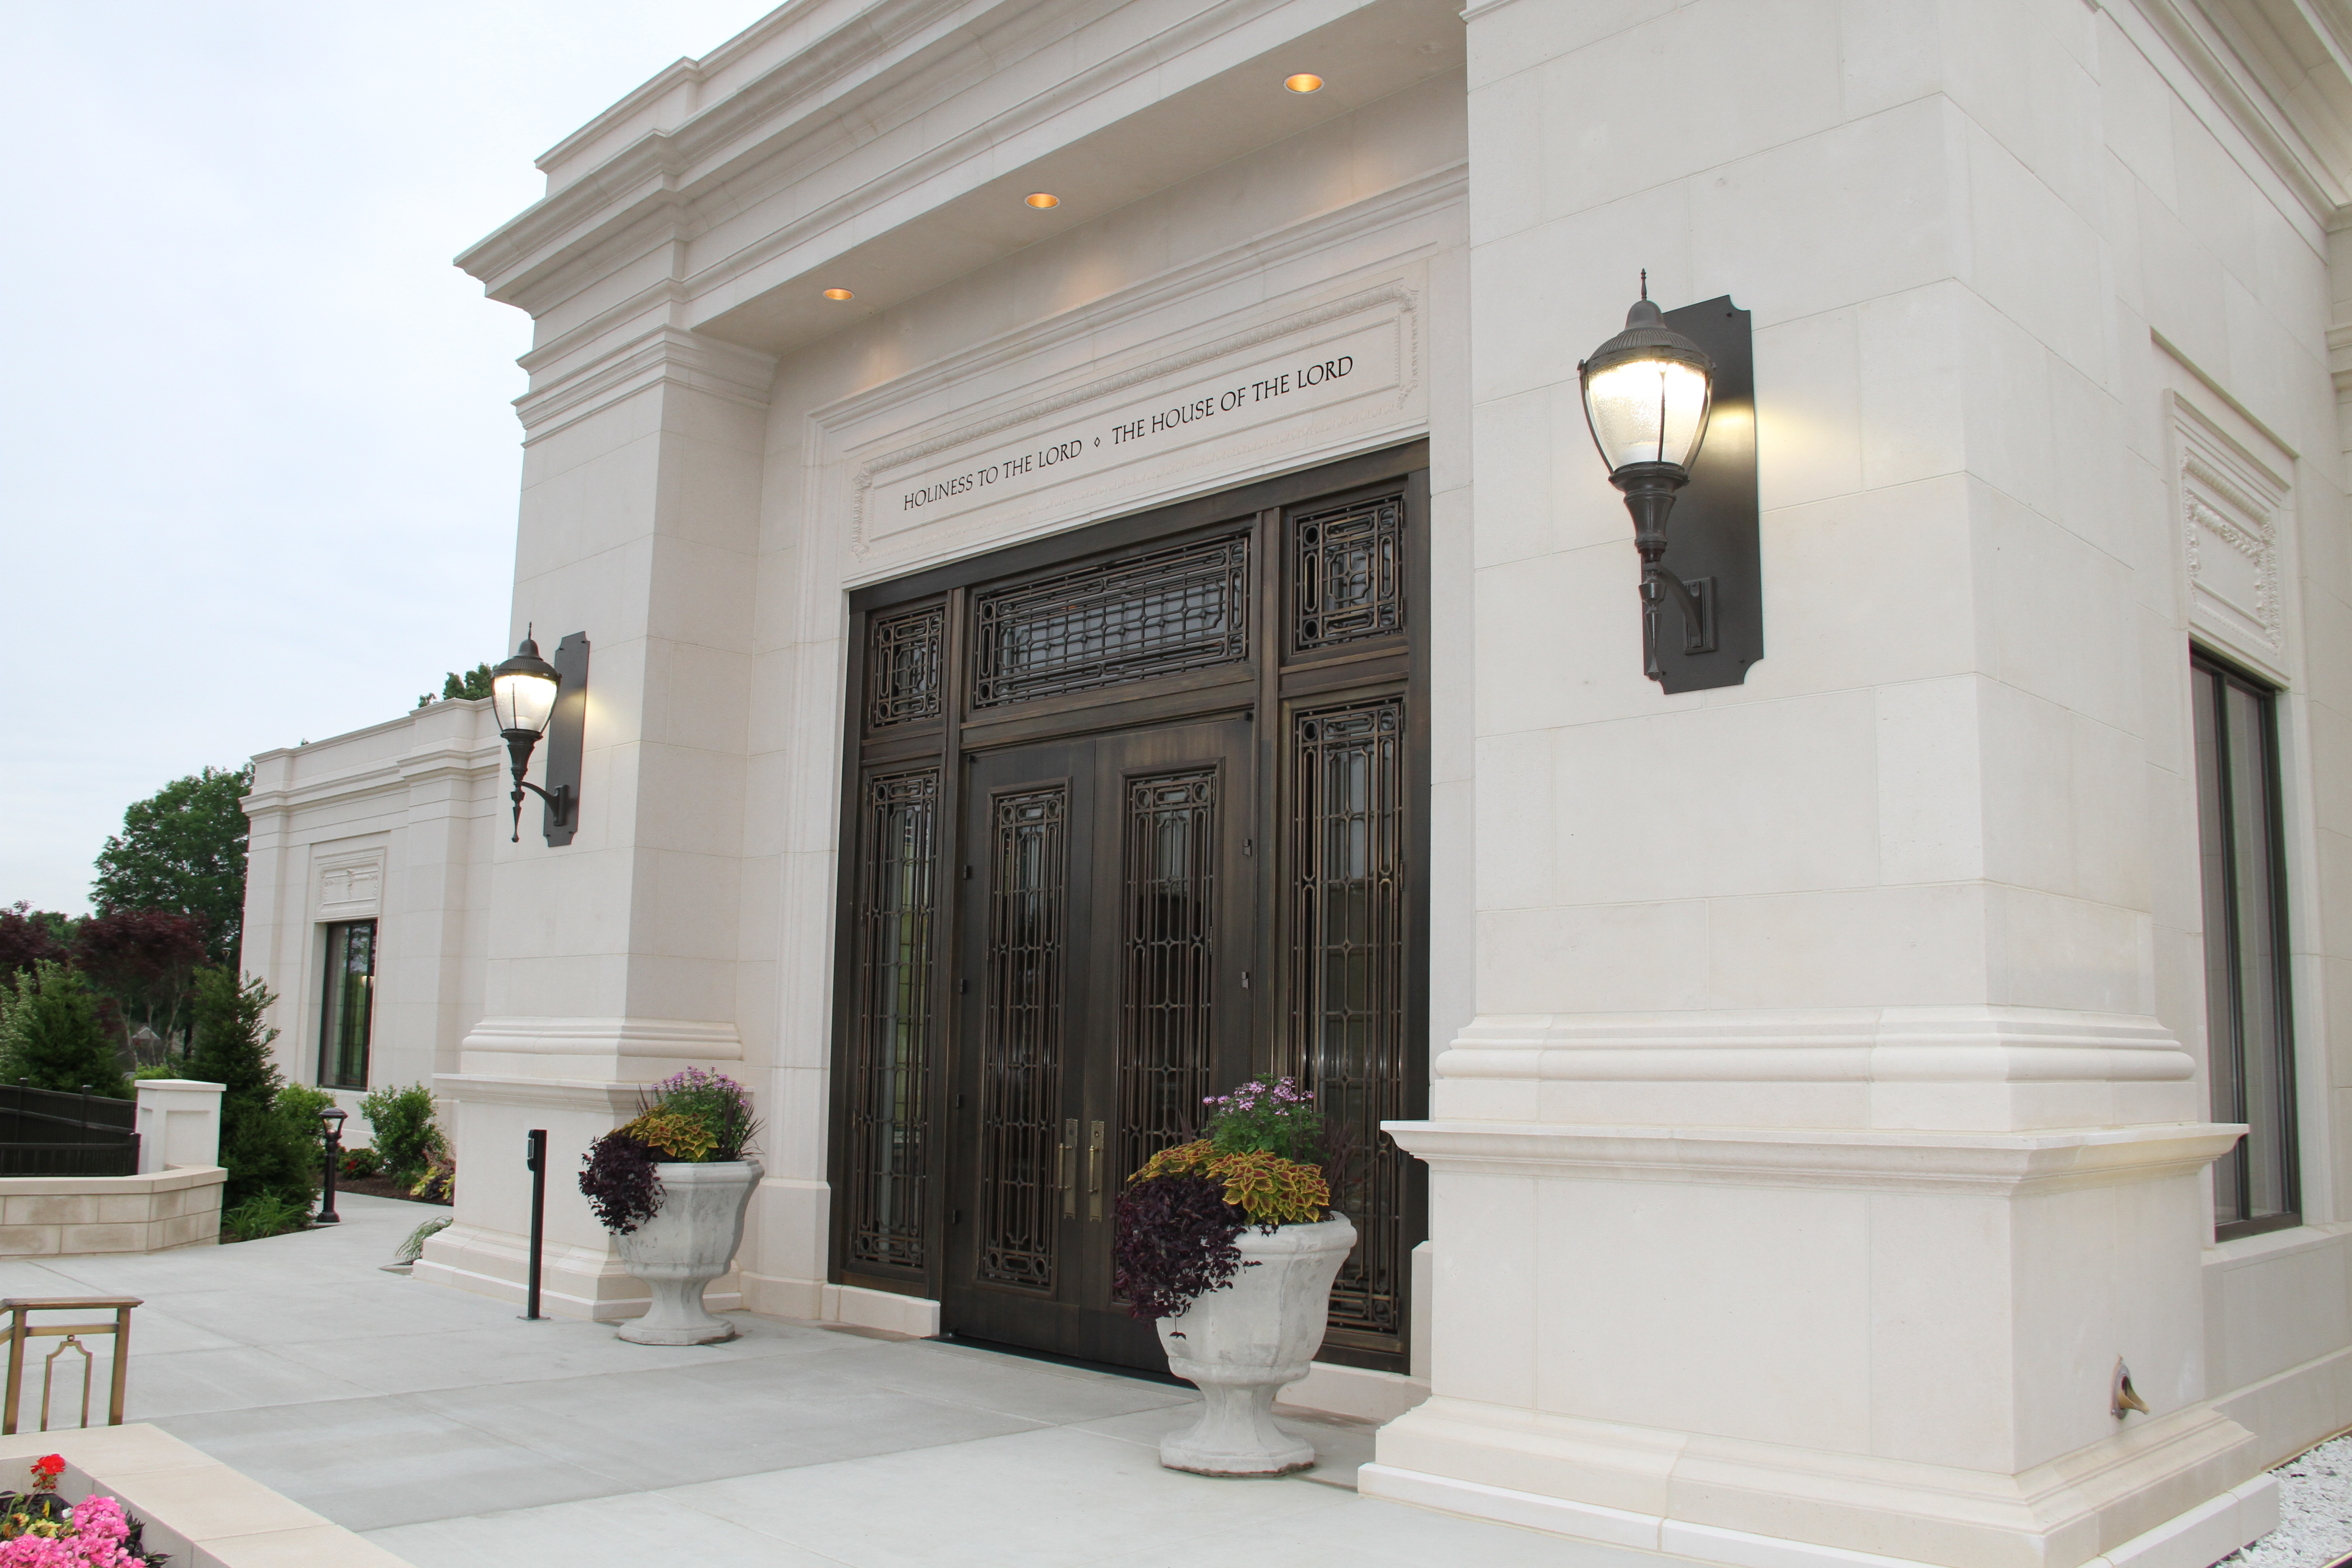 The entrance of the Memphis Tennessee Temple prior to its rededication on May 3, 2019.